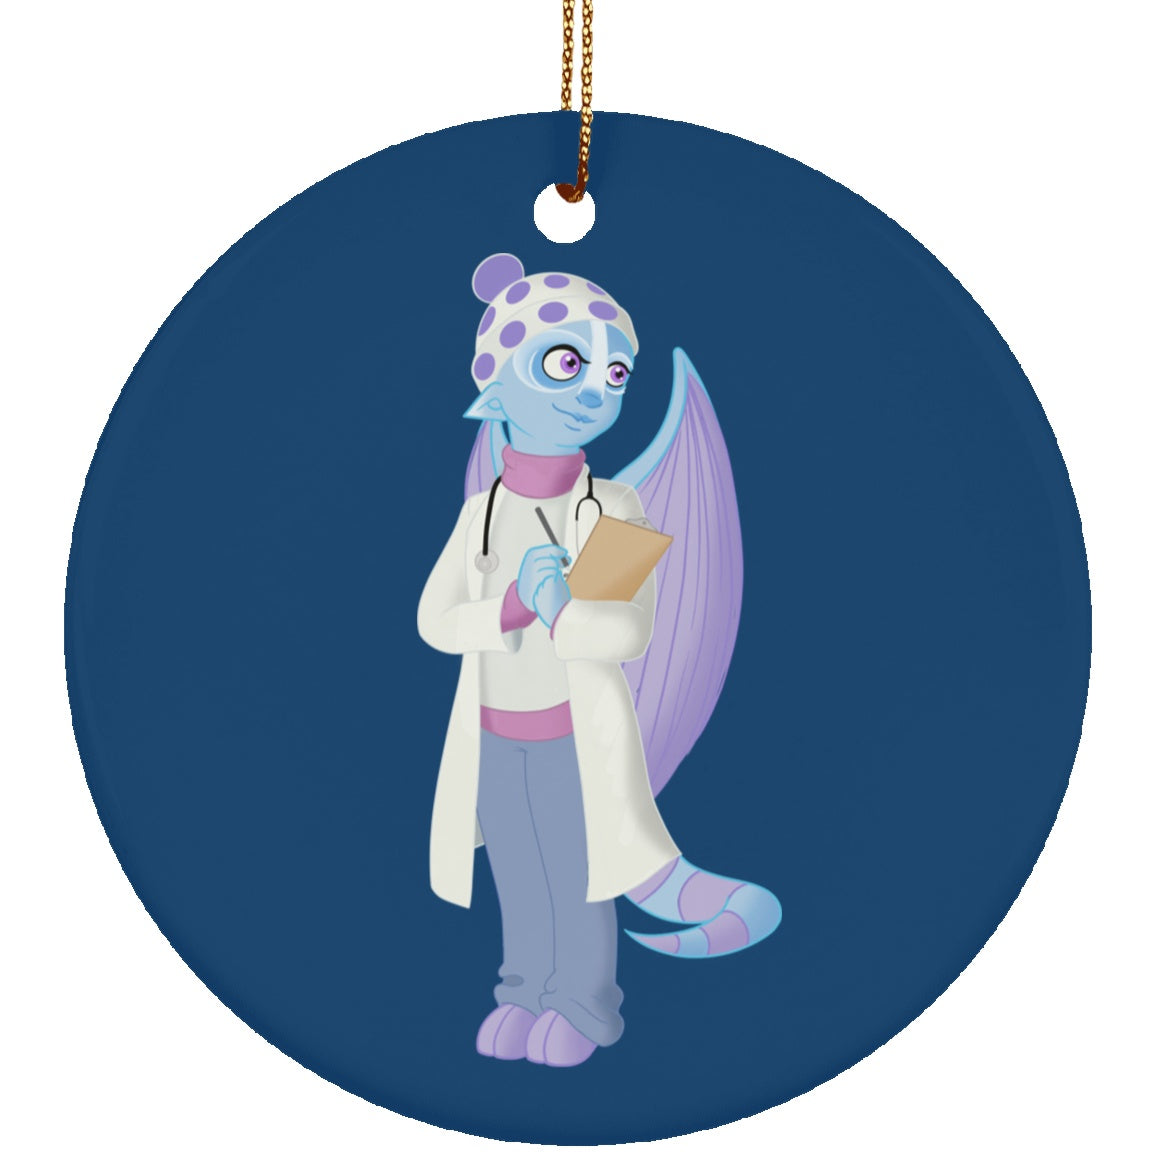 Cold Urticaria Monster Circle Ornament - The Unchargeables